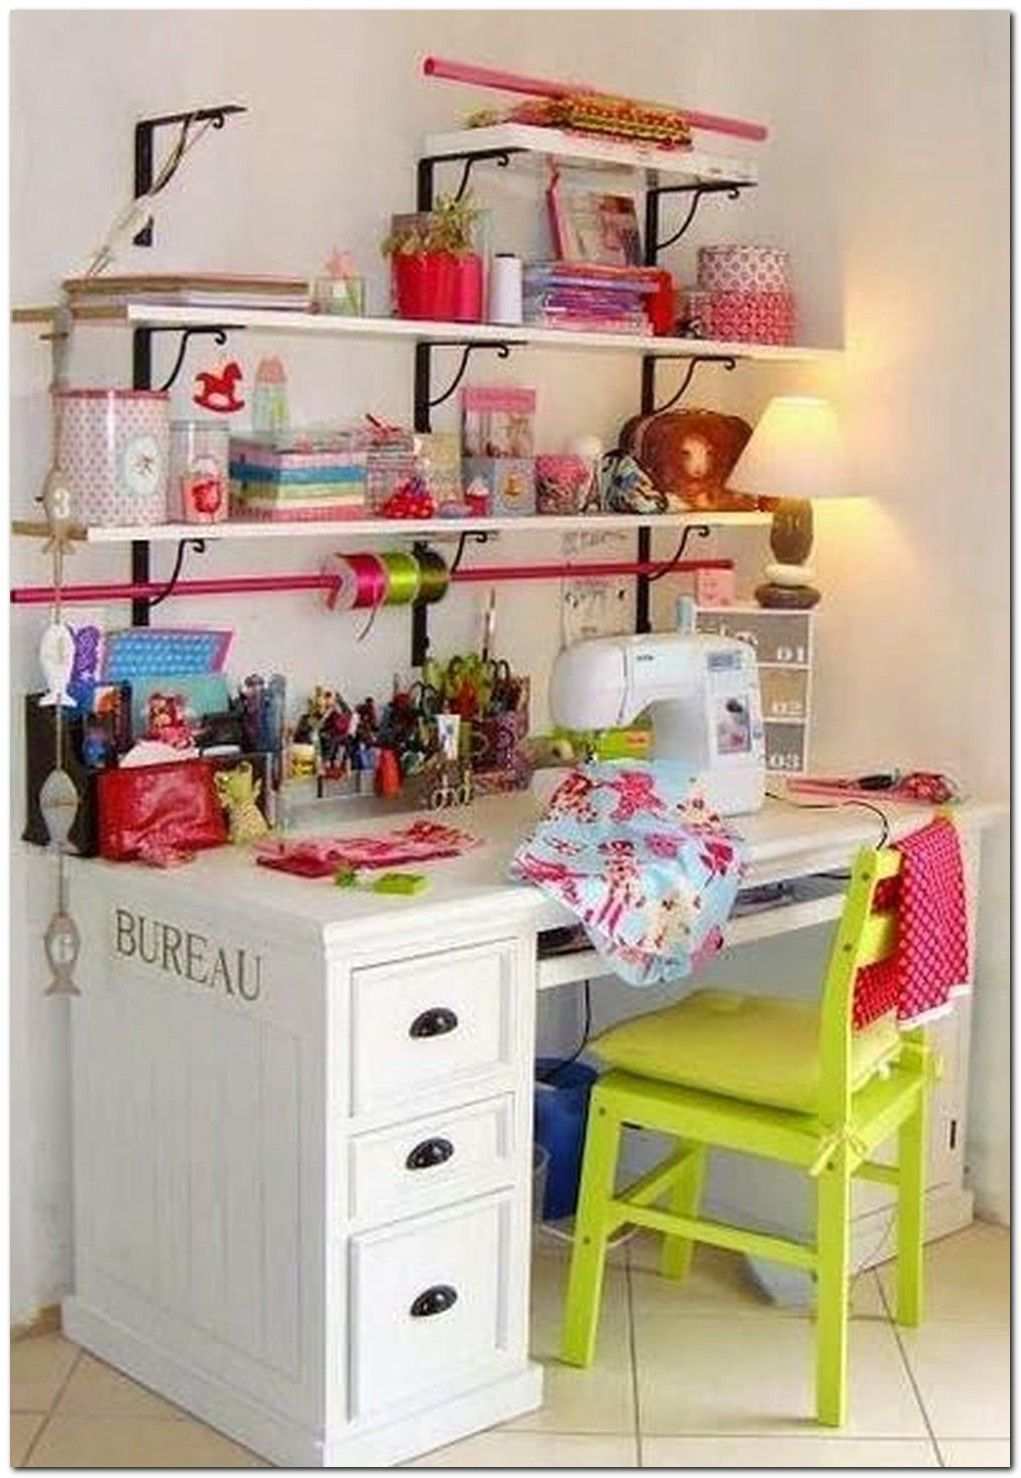 Designing A Sewing Room: 80+ Colorful Craft Room Decoration Ideas